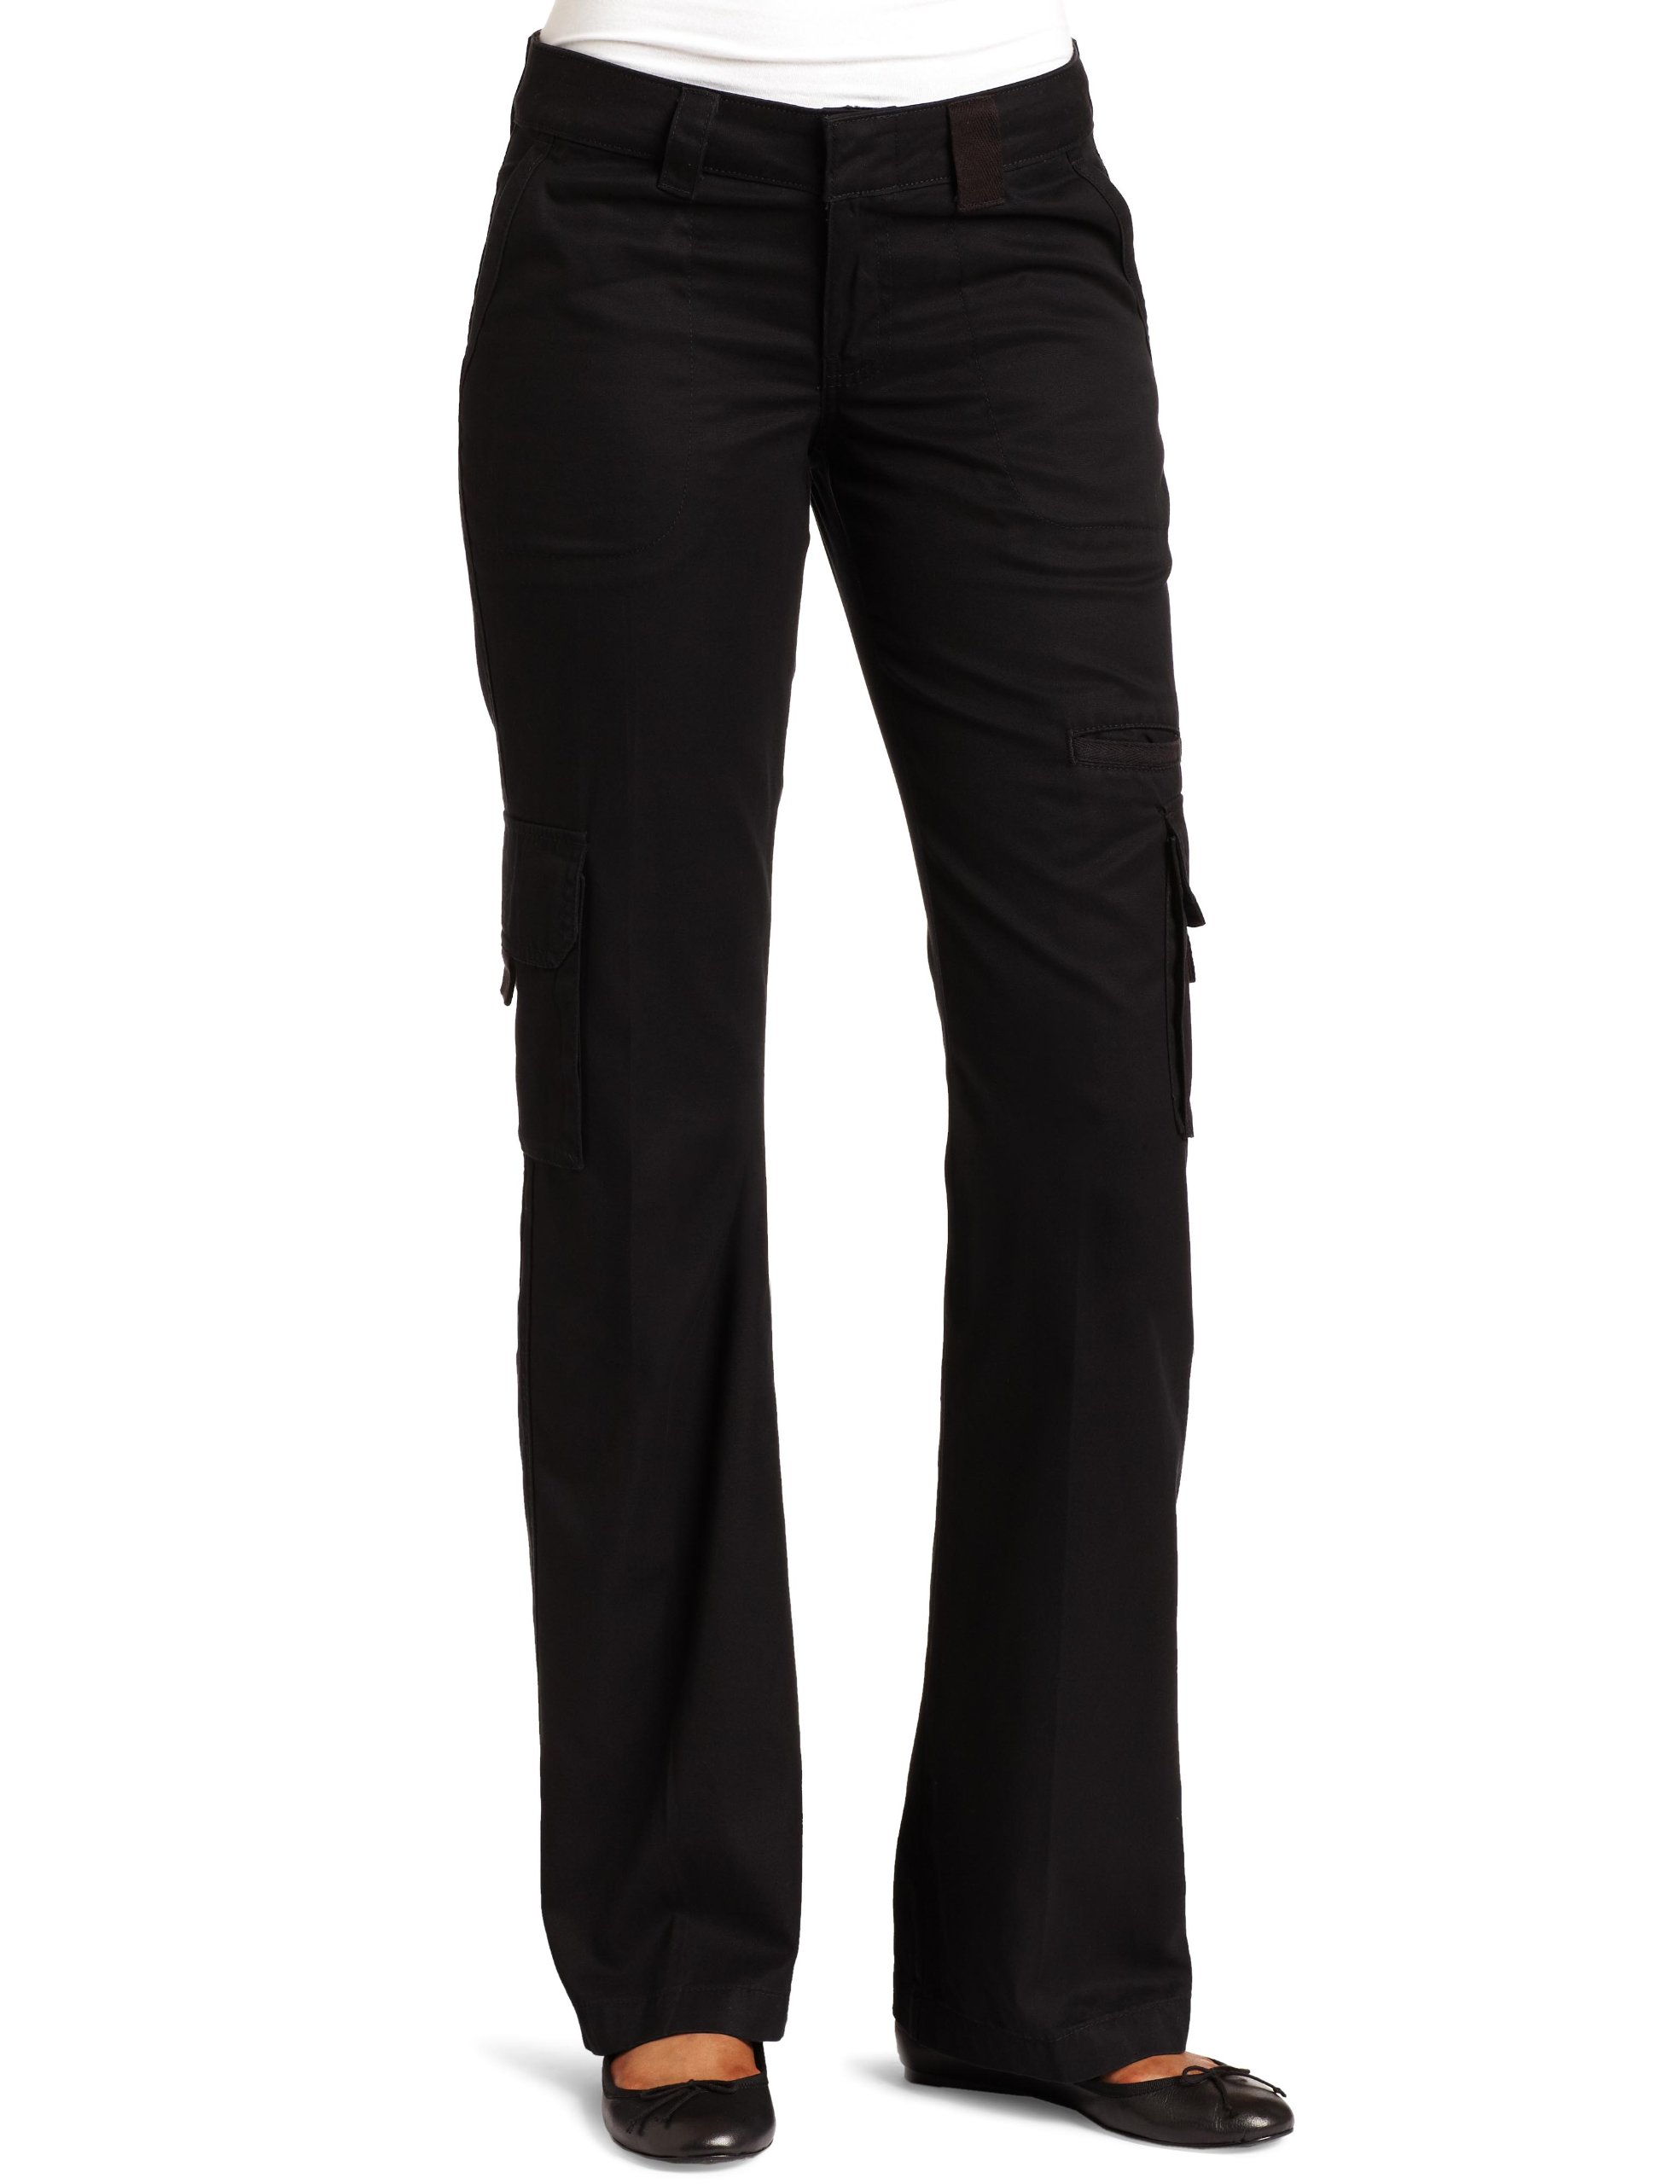 Dickies Women's Relaxed Fit Straight Leg Cargo Pant, Black, 14/Regular